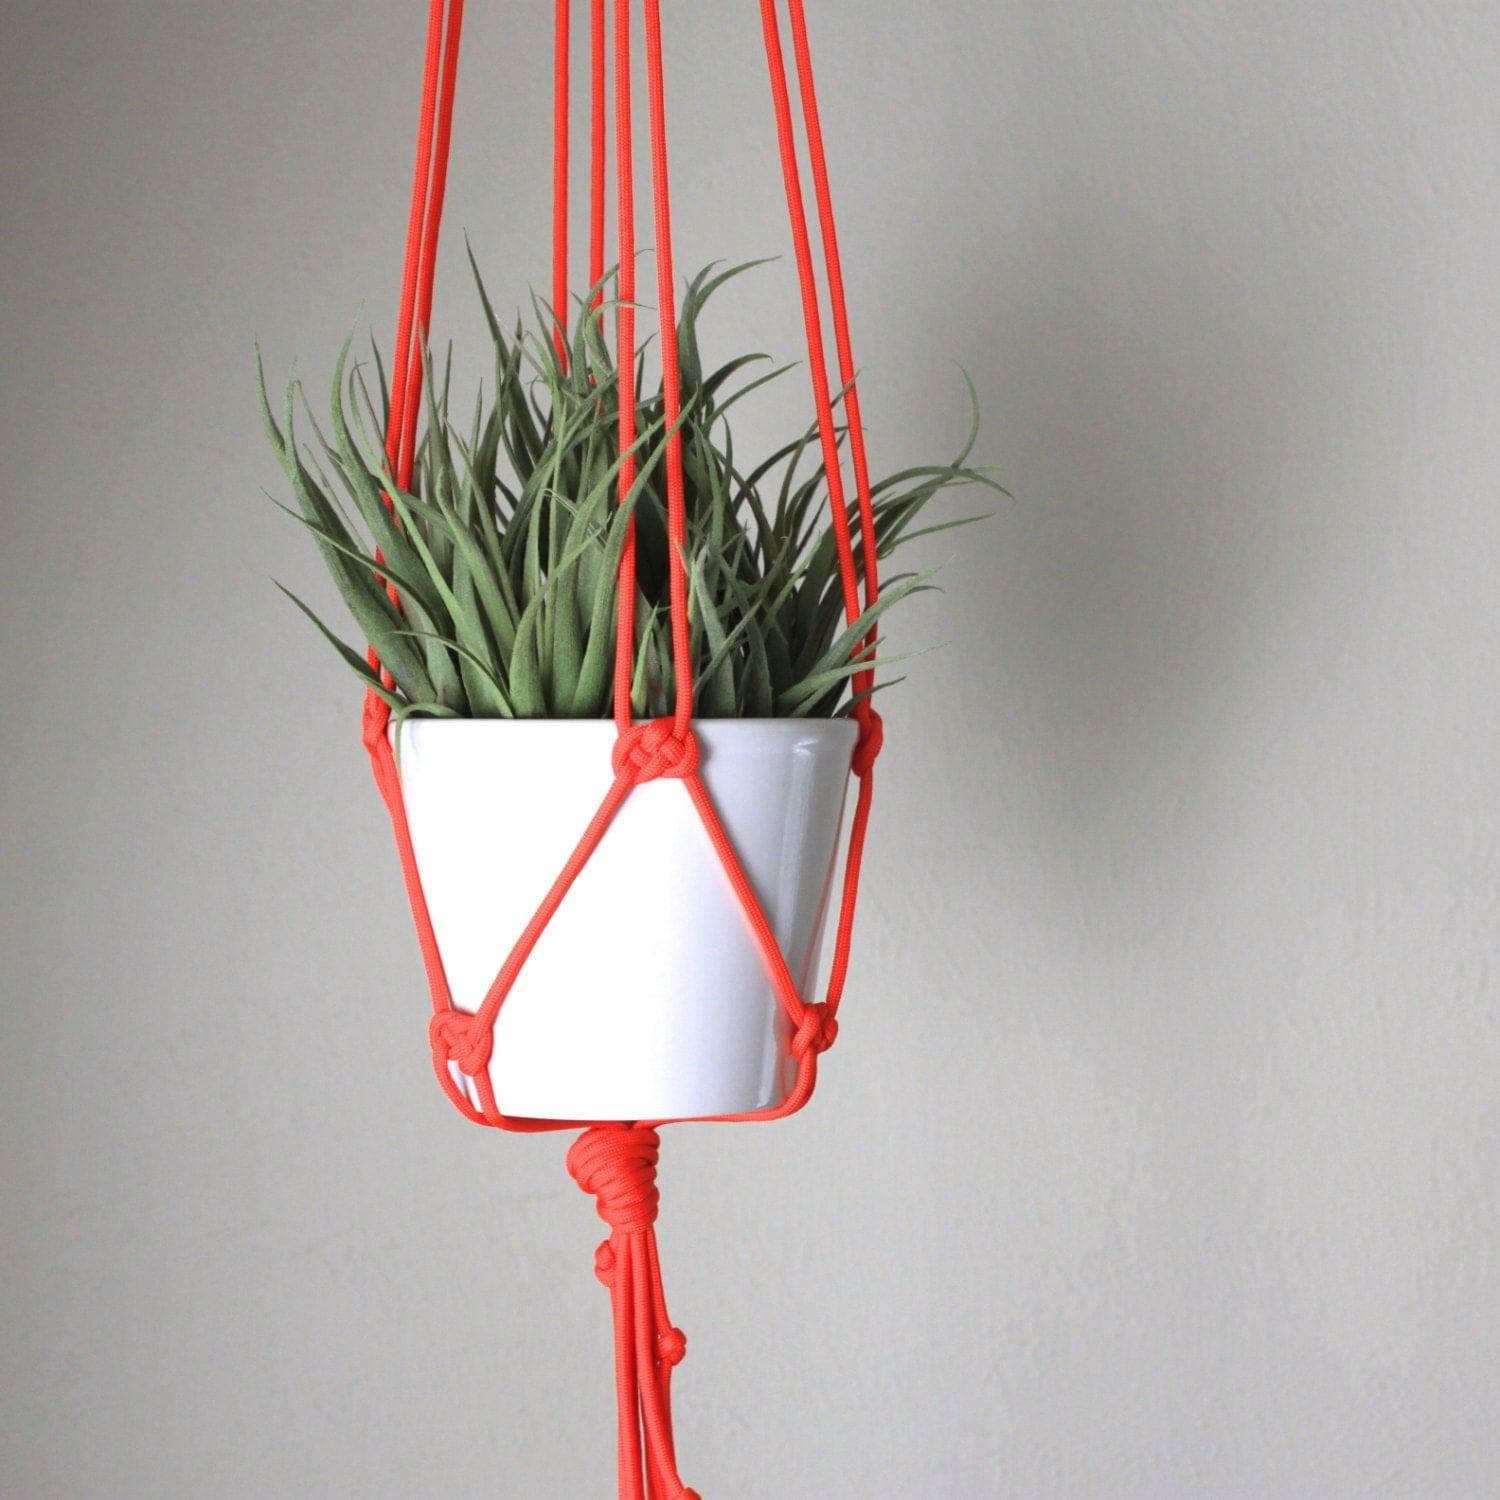 Modern Bright Orange Macrame Plant Hanger With White Planter